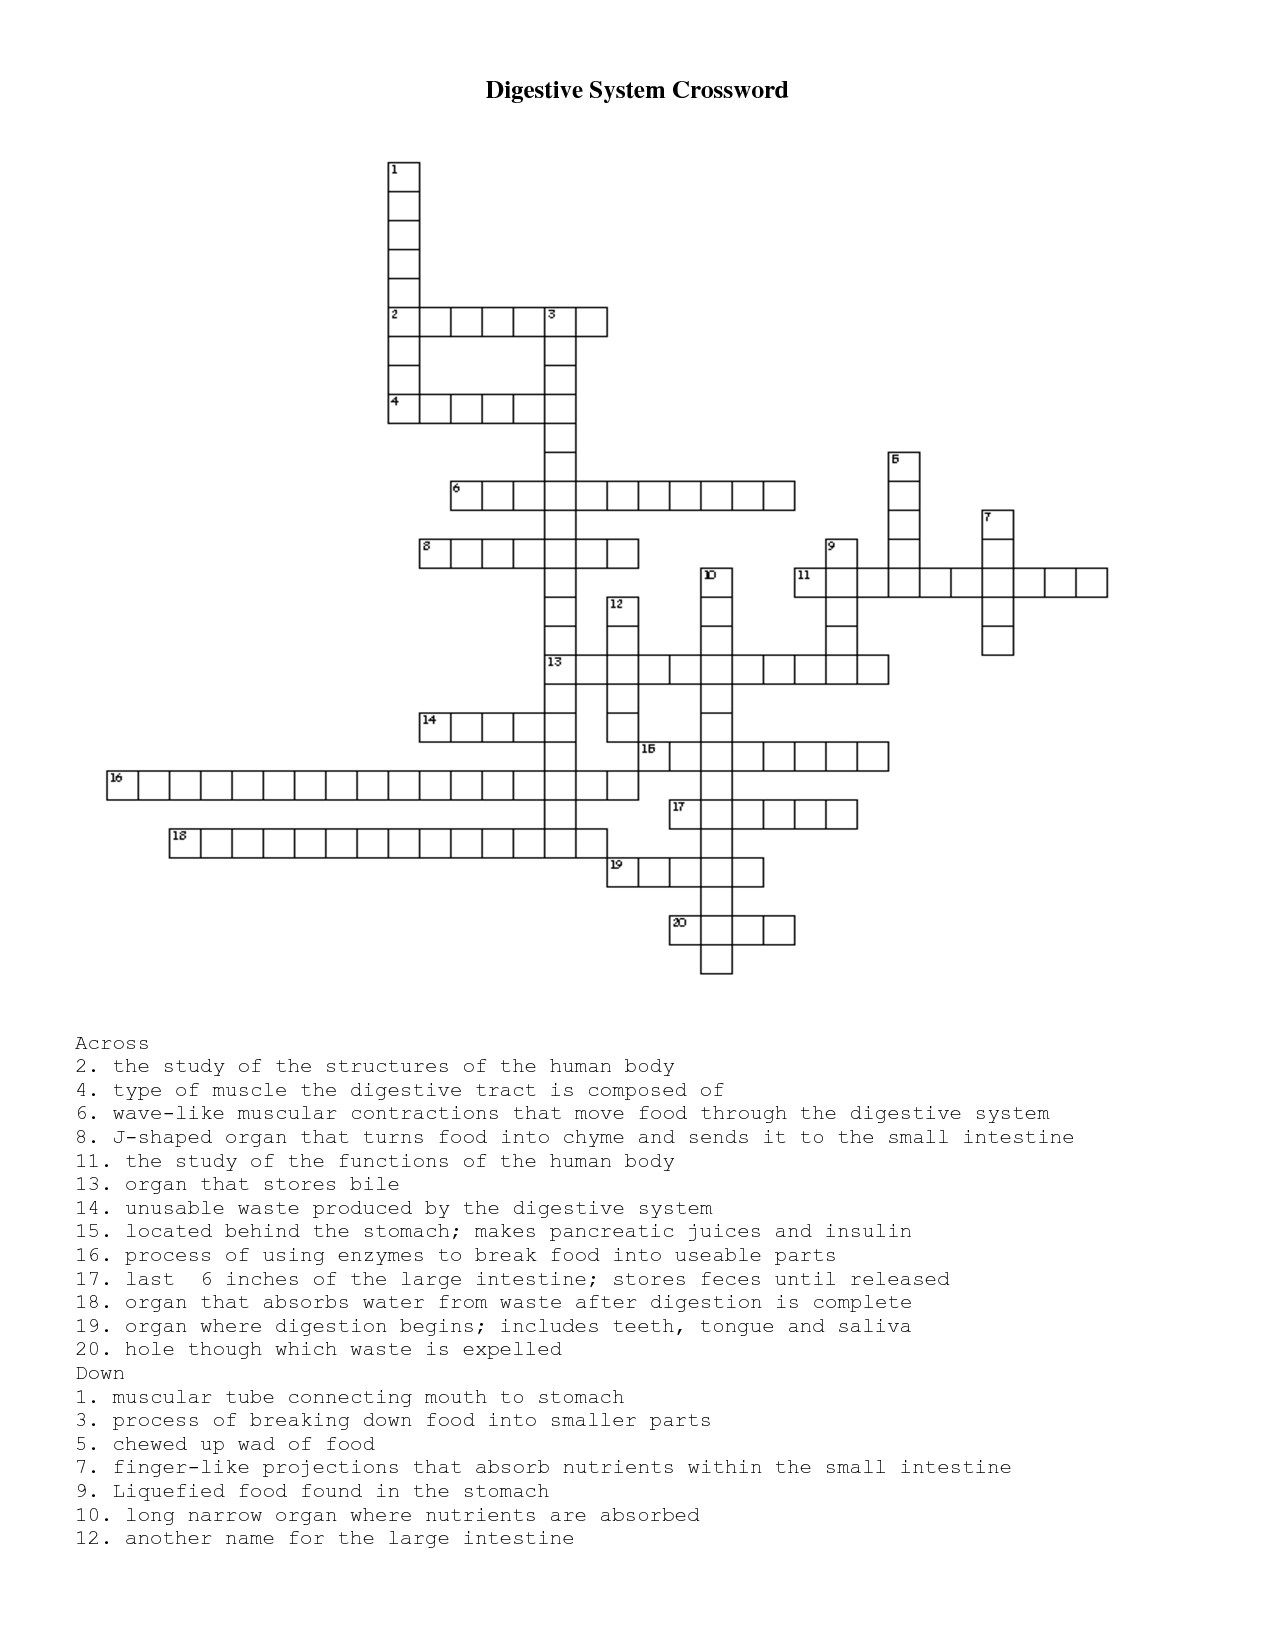 Digestive System Diagram Crossword Answer Key